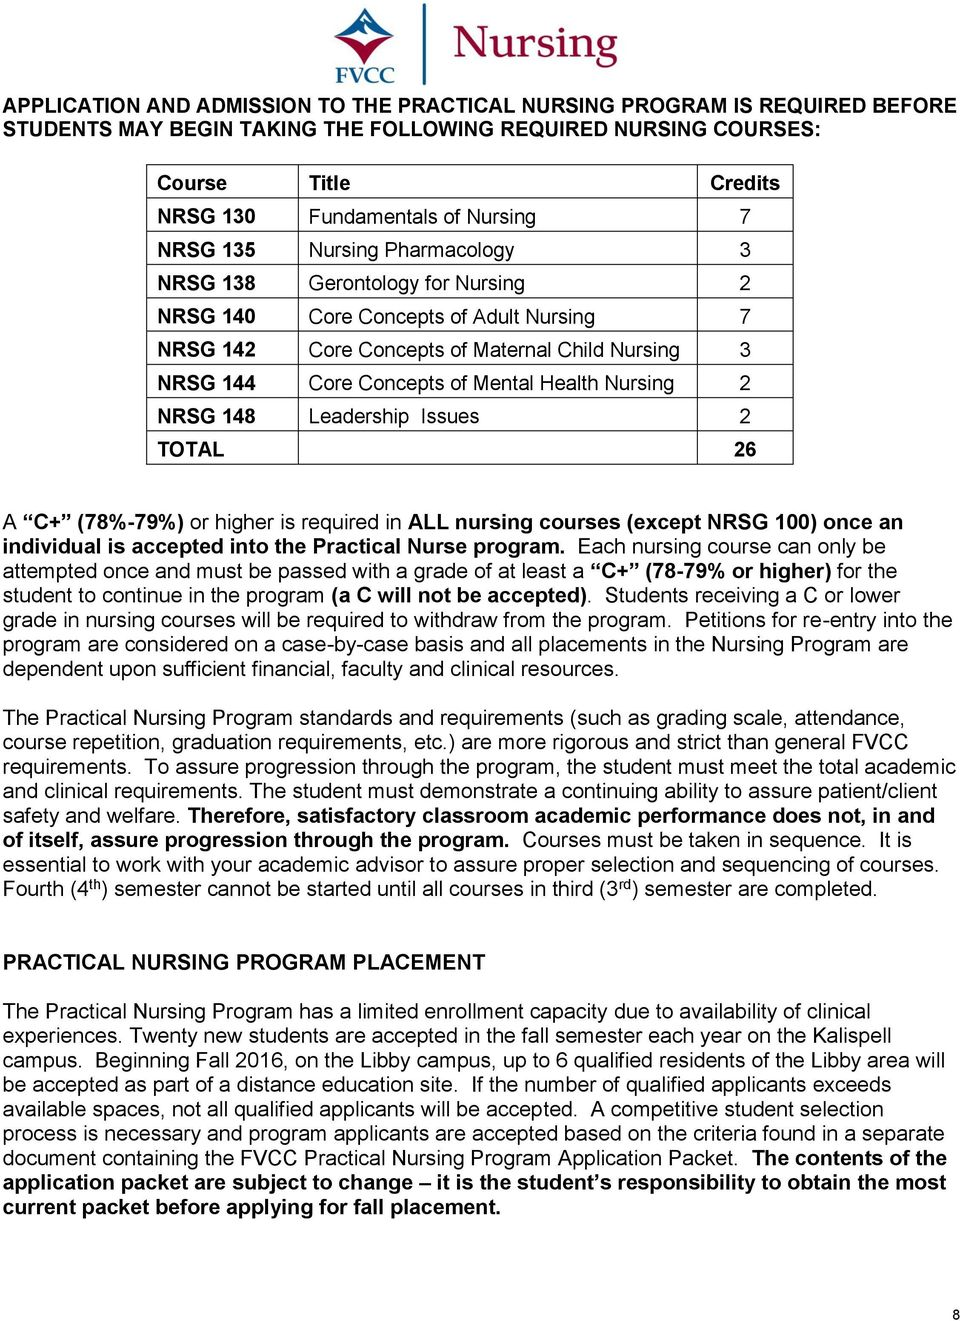 Nursing 2 NRSG 148 Leadership Issues 2 TOTAL 26 A C+ (78%-79%) or higher is required in ALL nursing courses (except NRSG 100) once an individual is accepted into the Practical Nurse program.